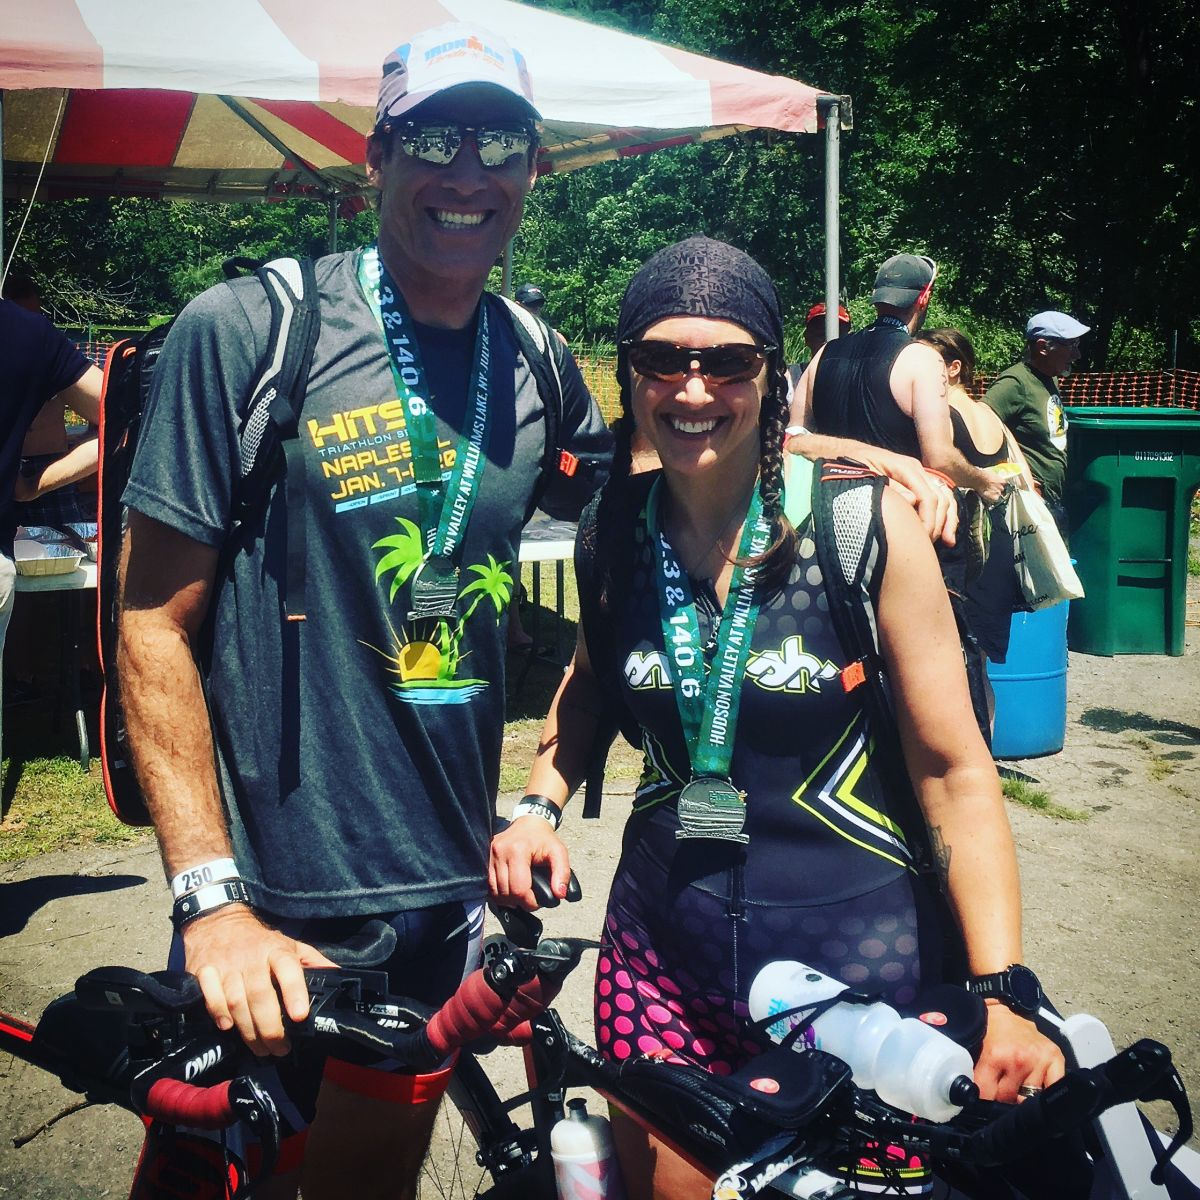 Triathlete Colleen Alexander, right, didn't let a near-fatal accident stop her from competing.